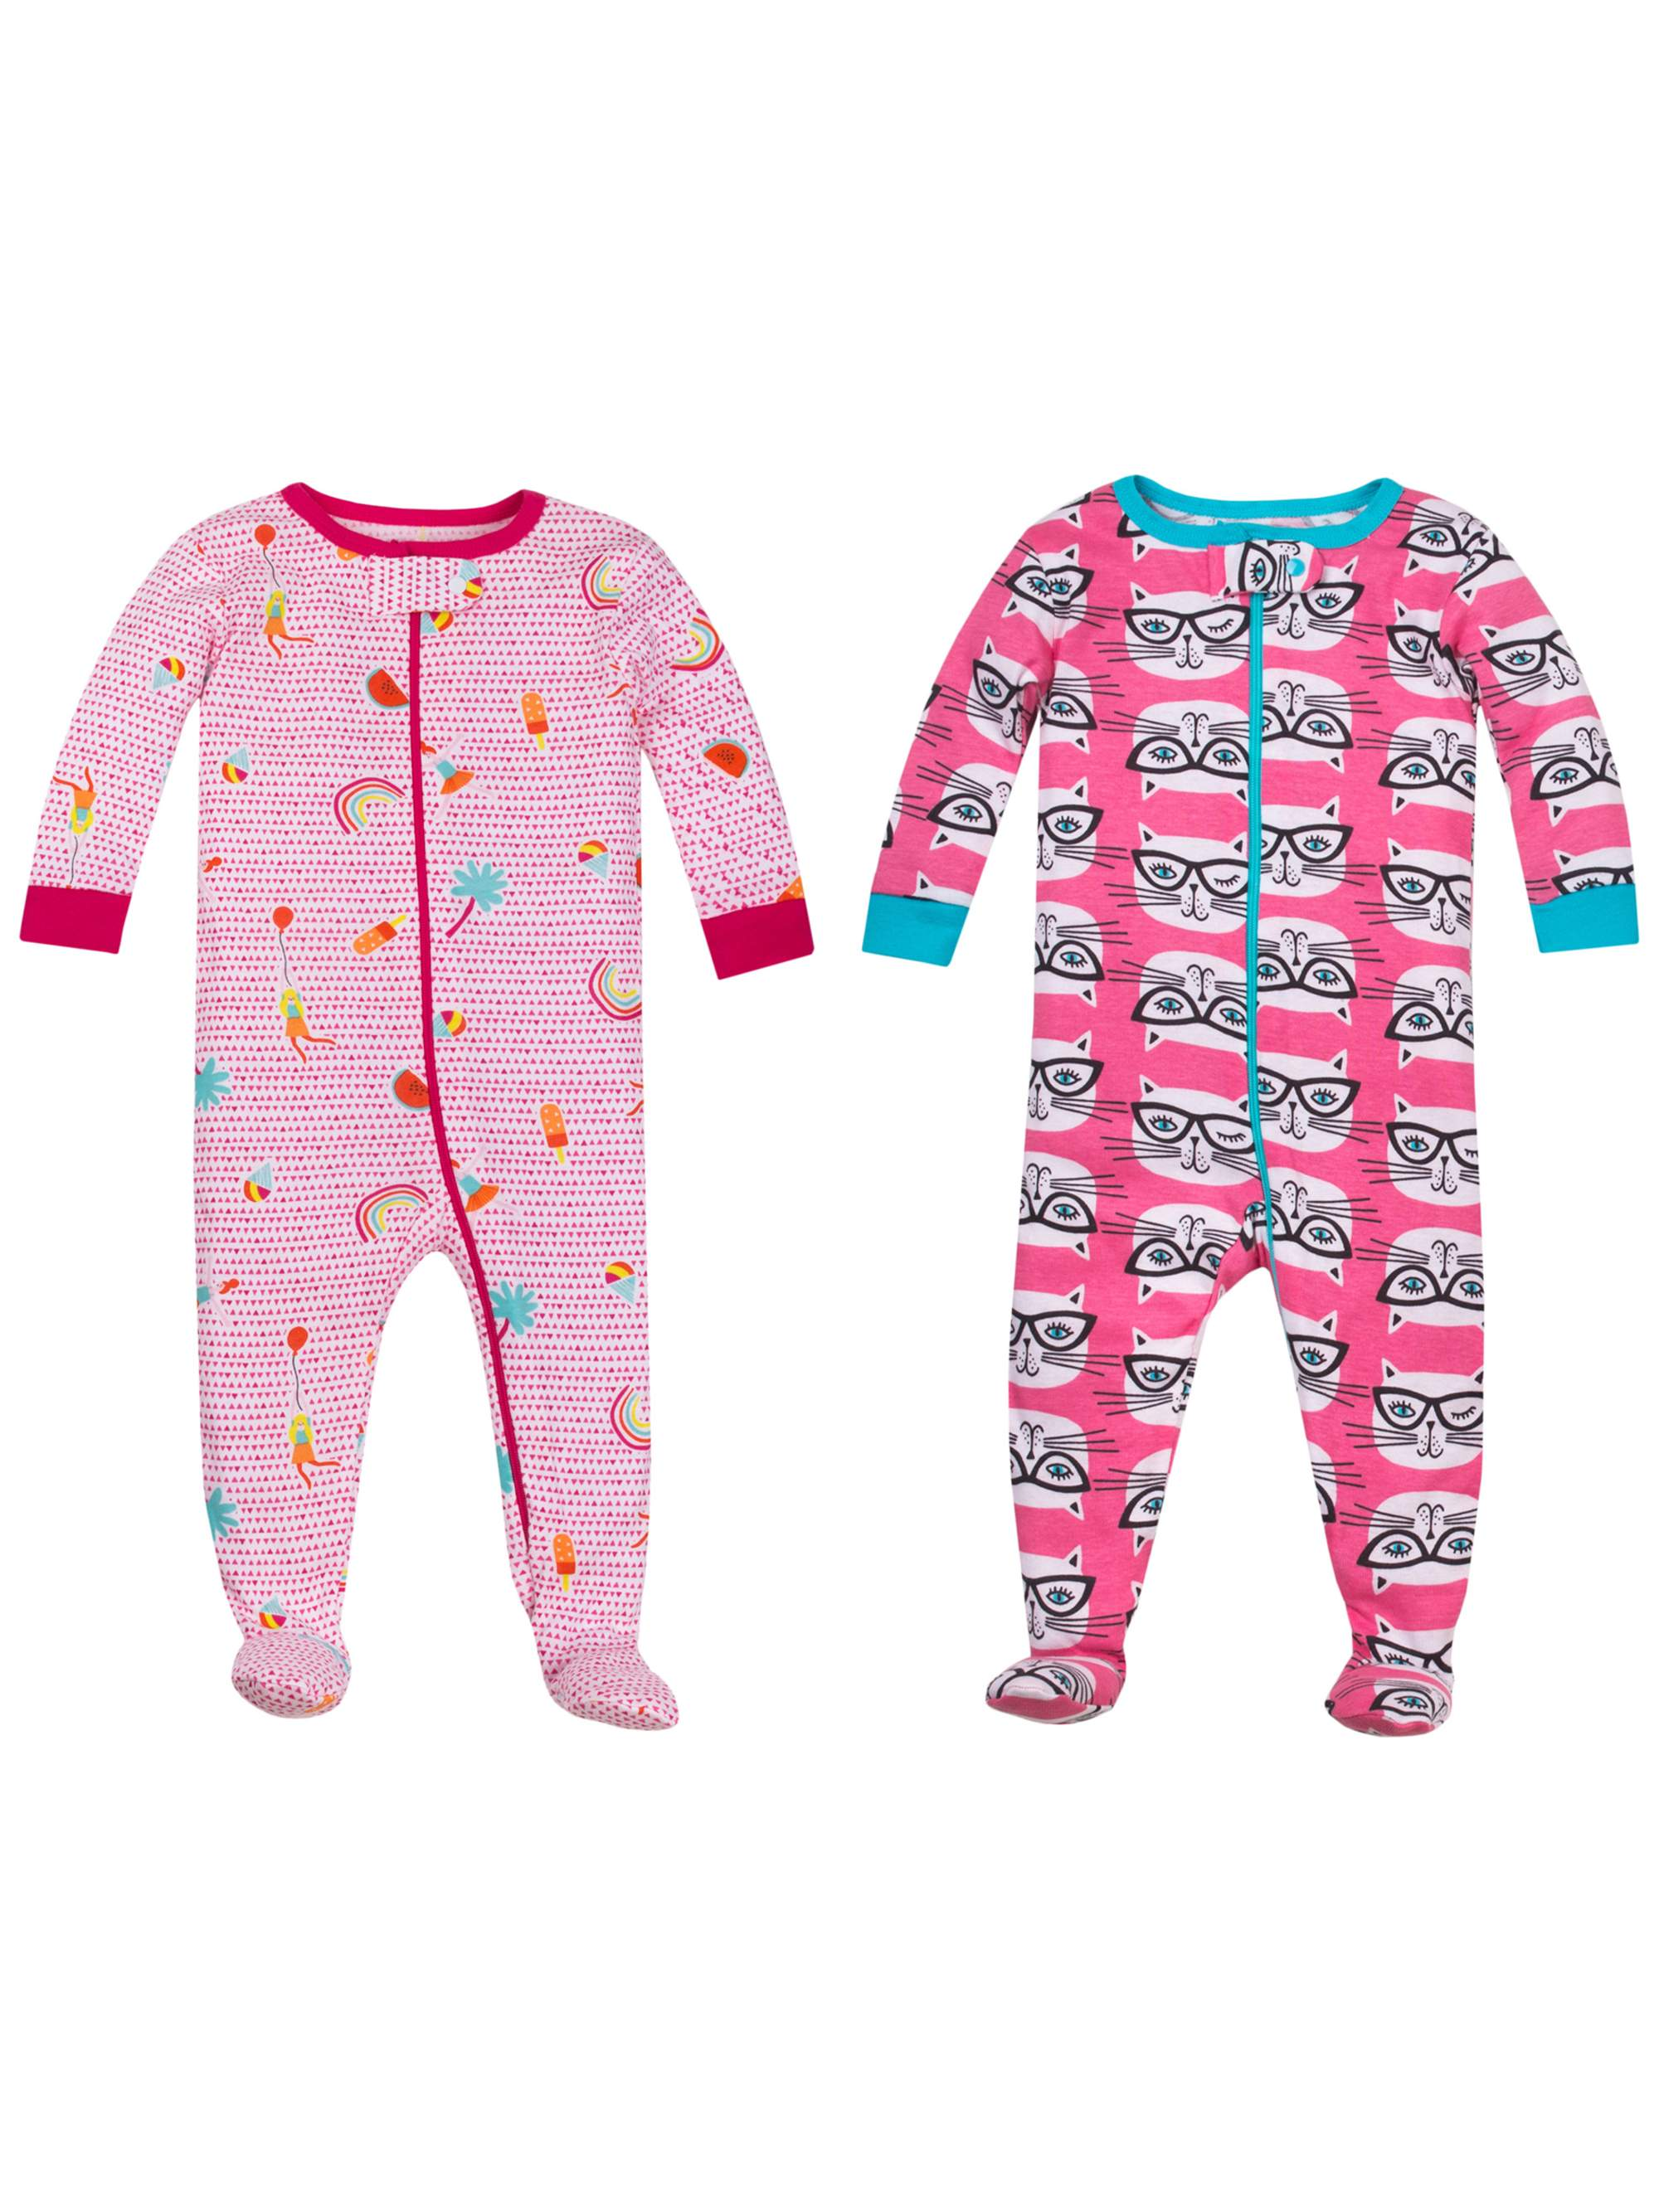 Baby Girl Snug Fit Stretchies, 2-pack